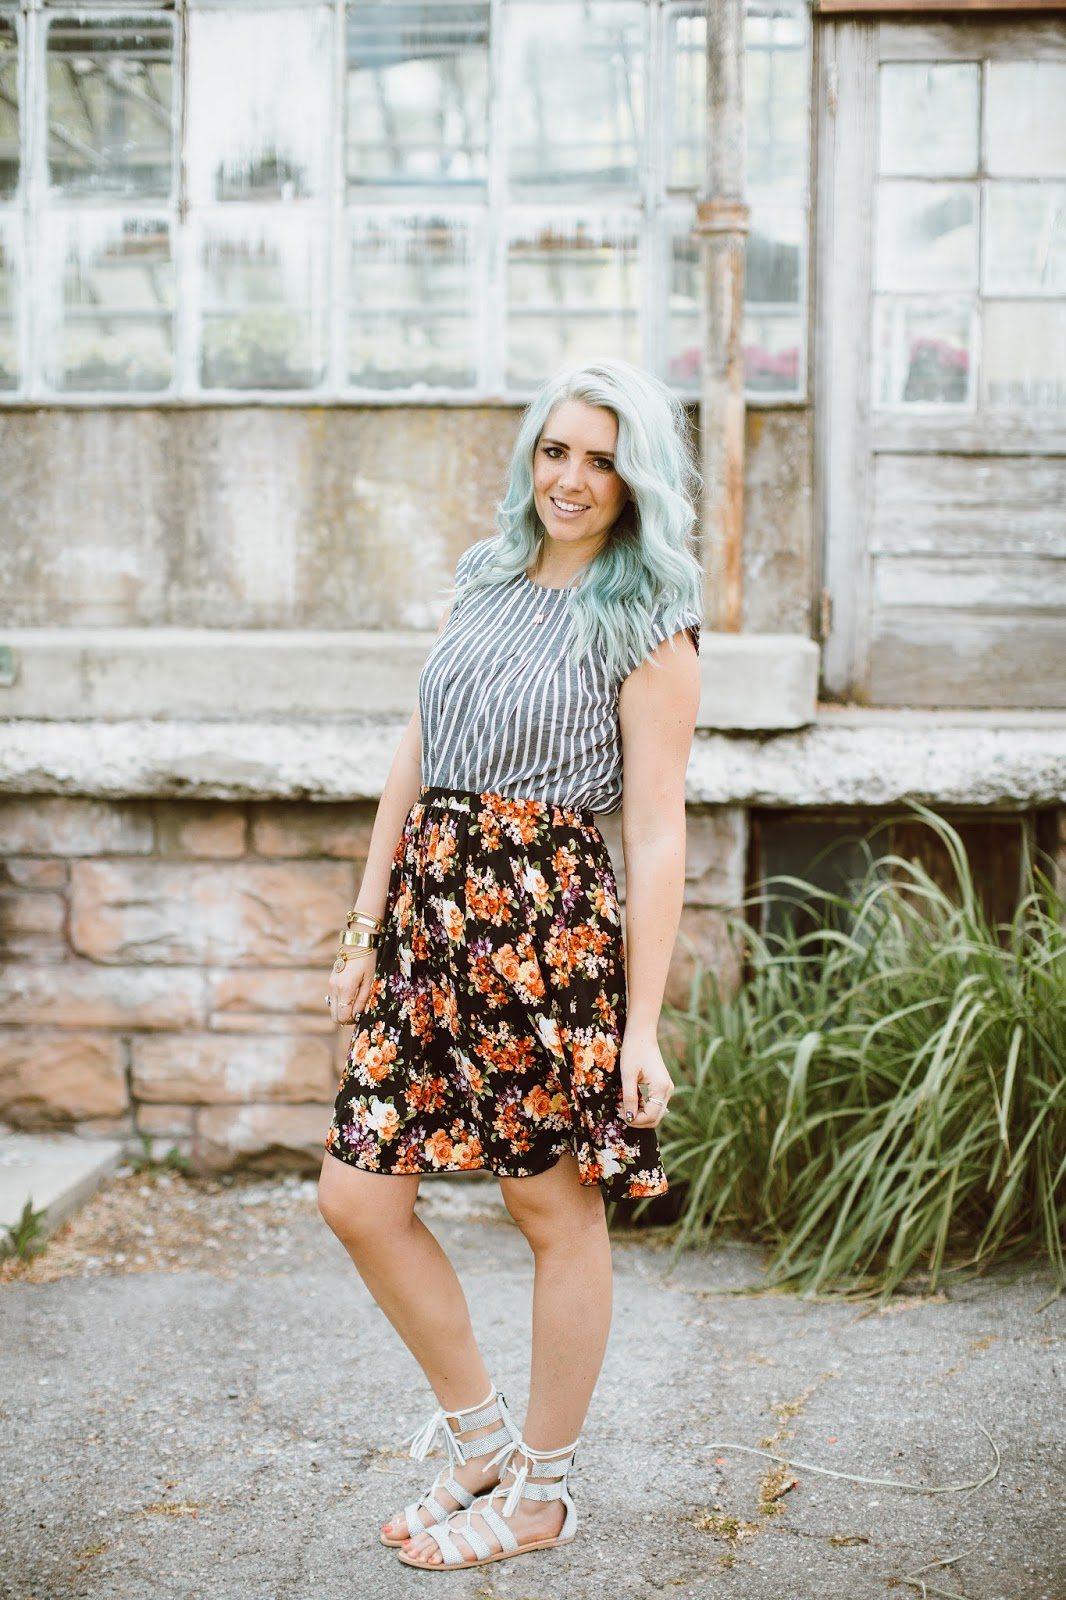 Floral Skirt, Striped Shirt, Sole Society Sandals